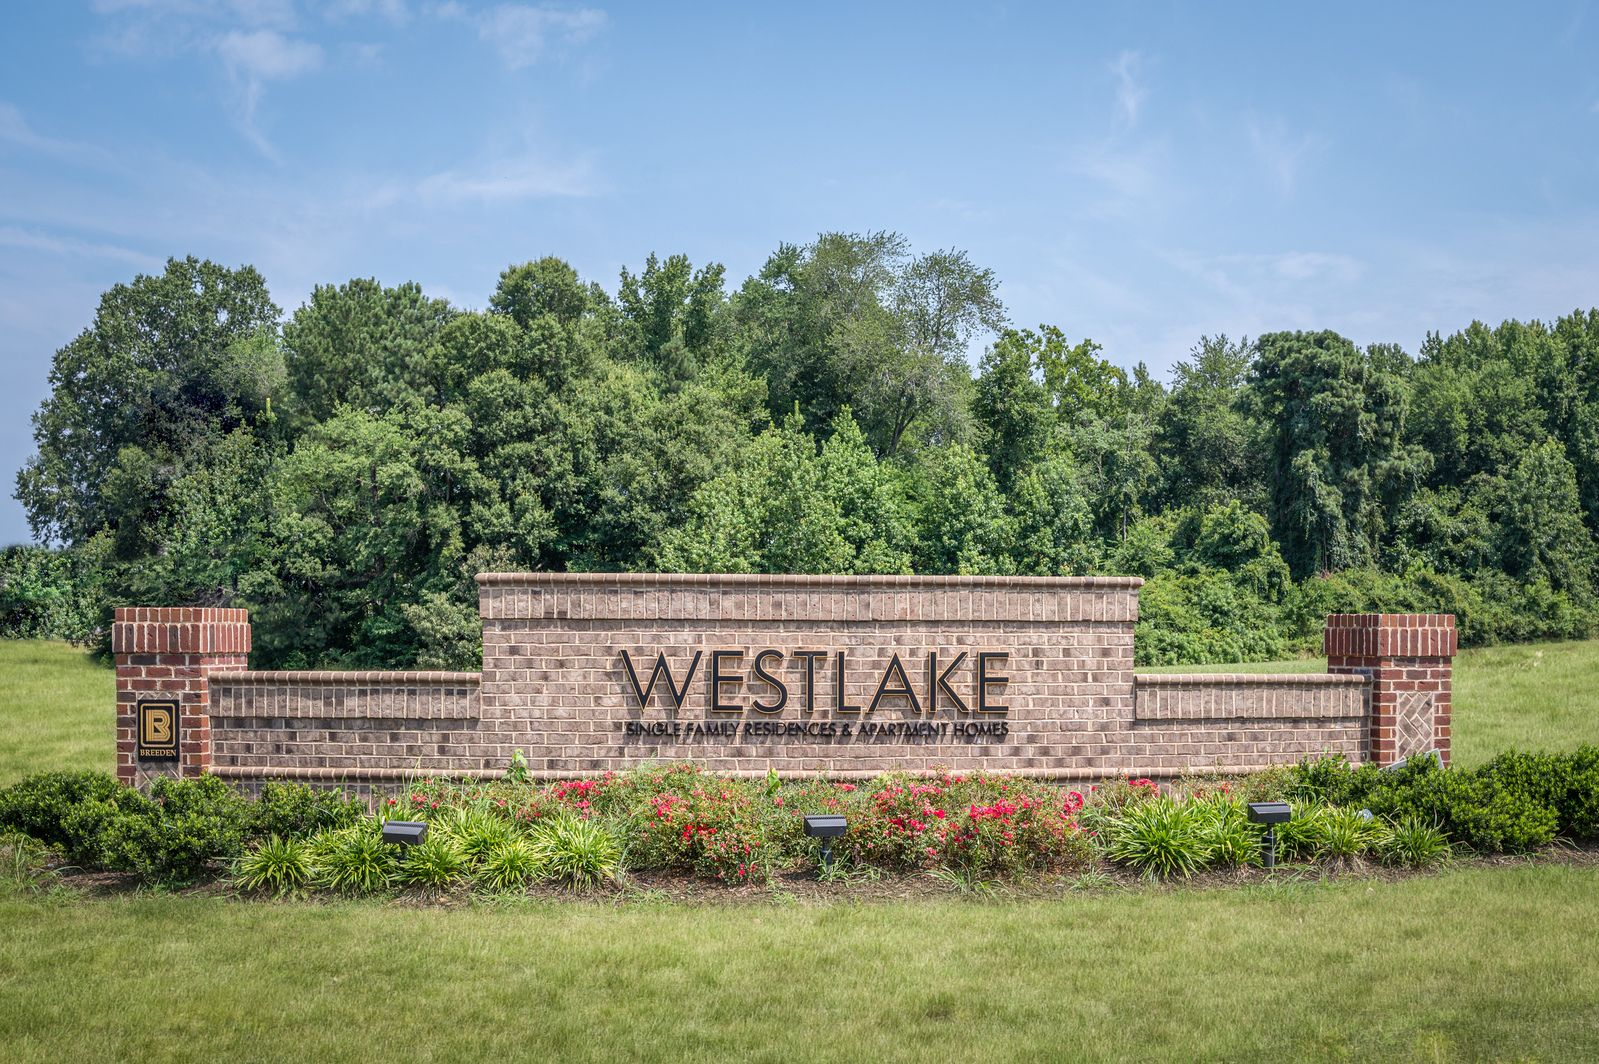 HAVE IT ALL! SINGLE-FAMILY HOMES WITH MAINTENANCE-FREE YARDS, 2-CAR GARAGES, IN RICHMOND CITY!:Click here for your private tour.See why so many people have already chosen to make Westlake their home!